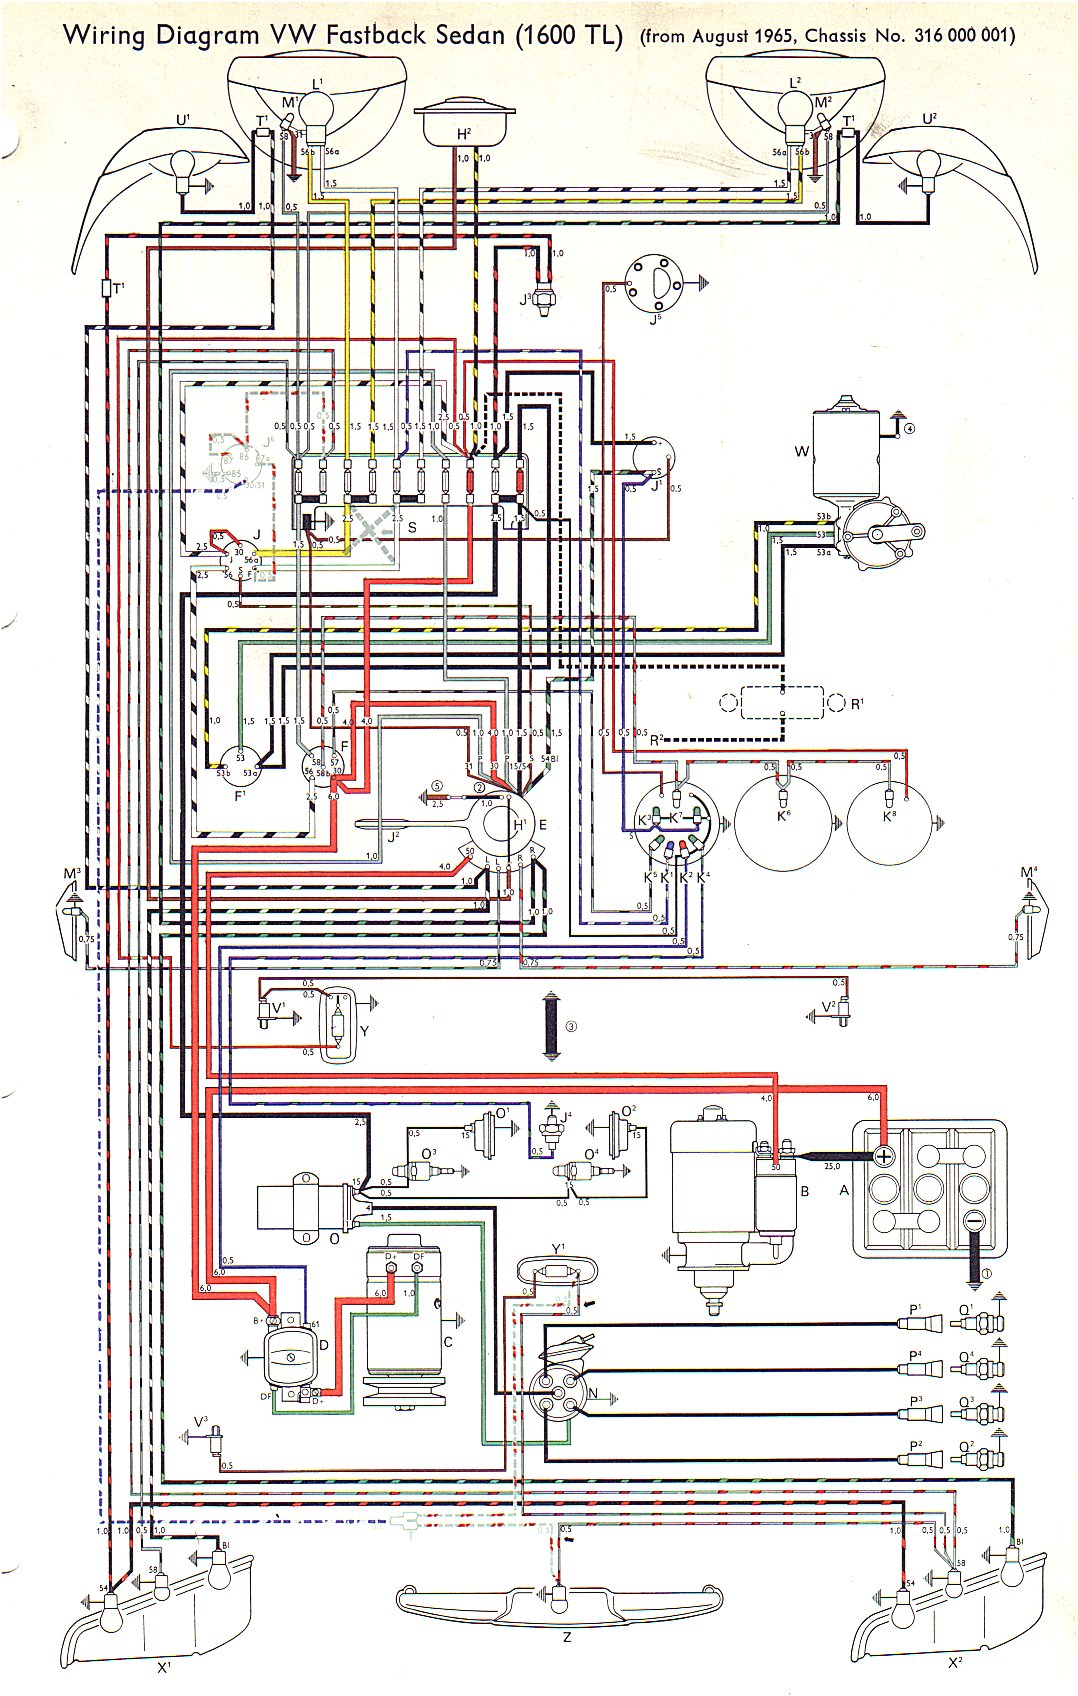 wire66tl?resize=840%2C1322 wiring diagram og holley pro jection wiring diagram images holley pro jection wiring diagram at edmiracle.co